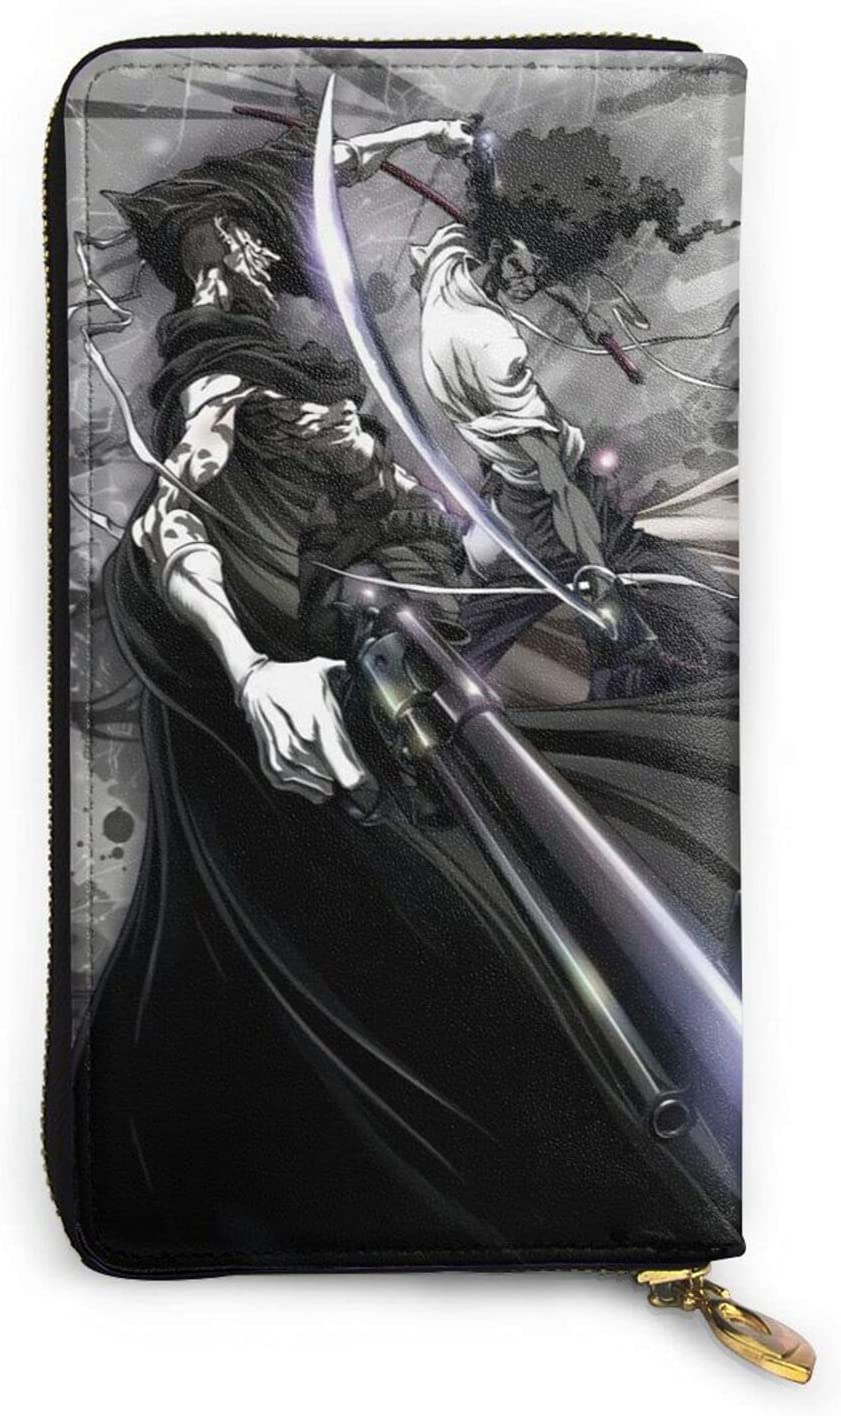 Afro Samurai Leather Wallet Zip For Long Max 83% OFF Purse Free shipping on posting reviews Men